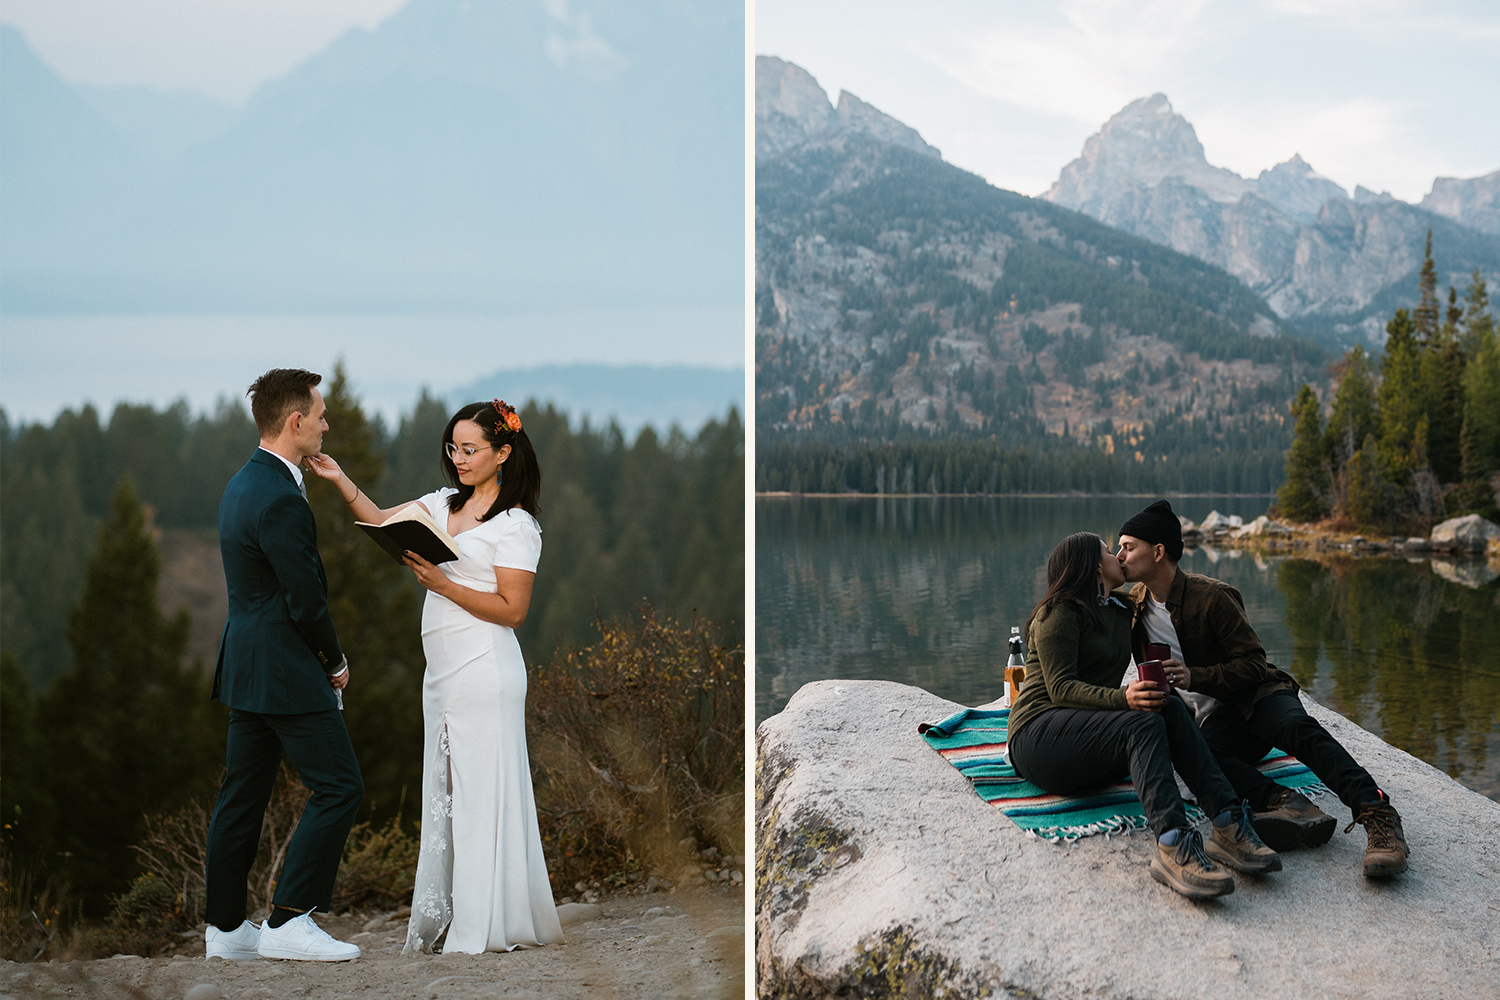 ceremony in the mountains with bride and groom at sunrise